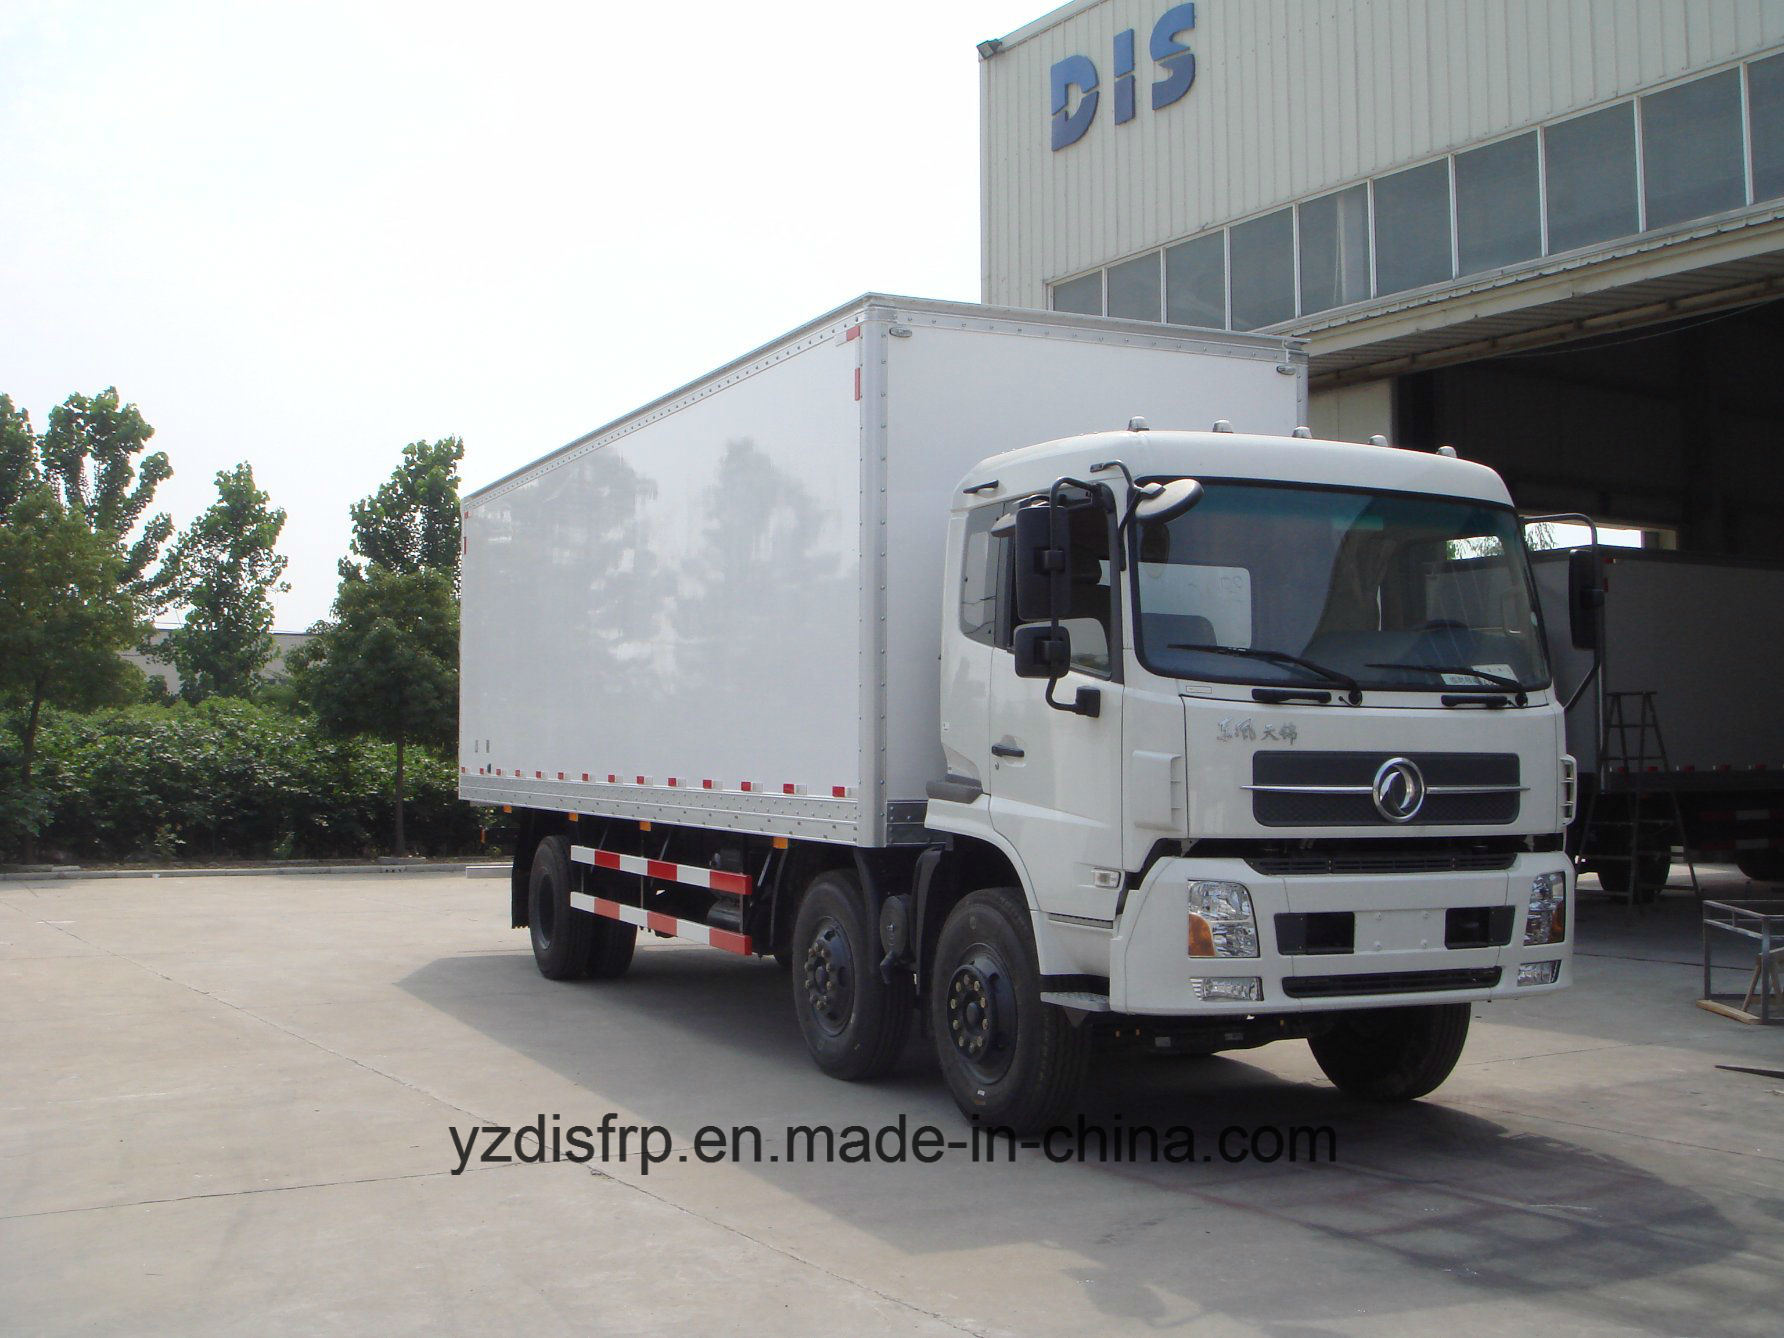 Competitive Price FRP Dry Cargo Truck Body with ISO9001 Approved